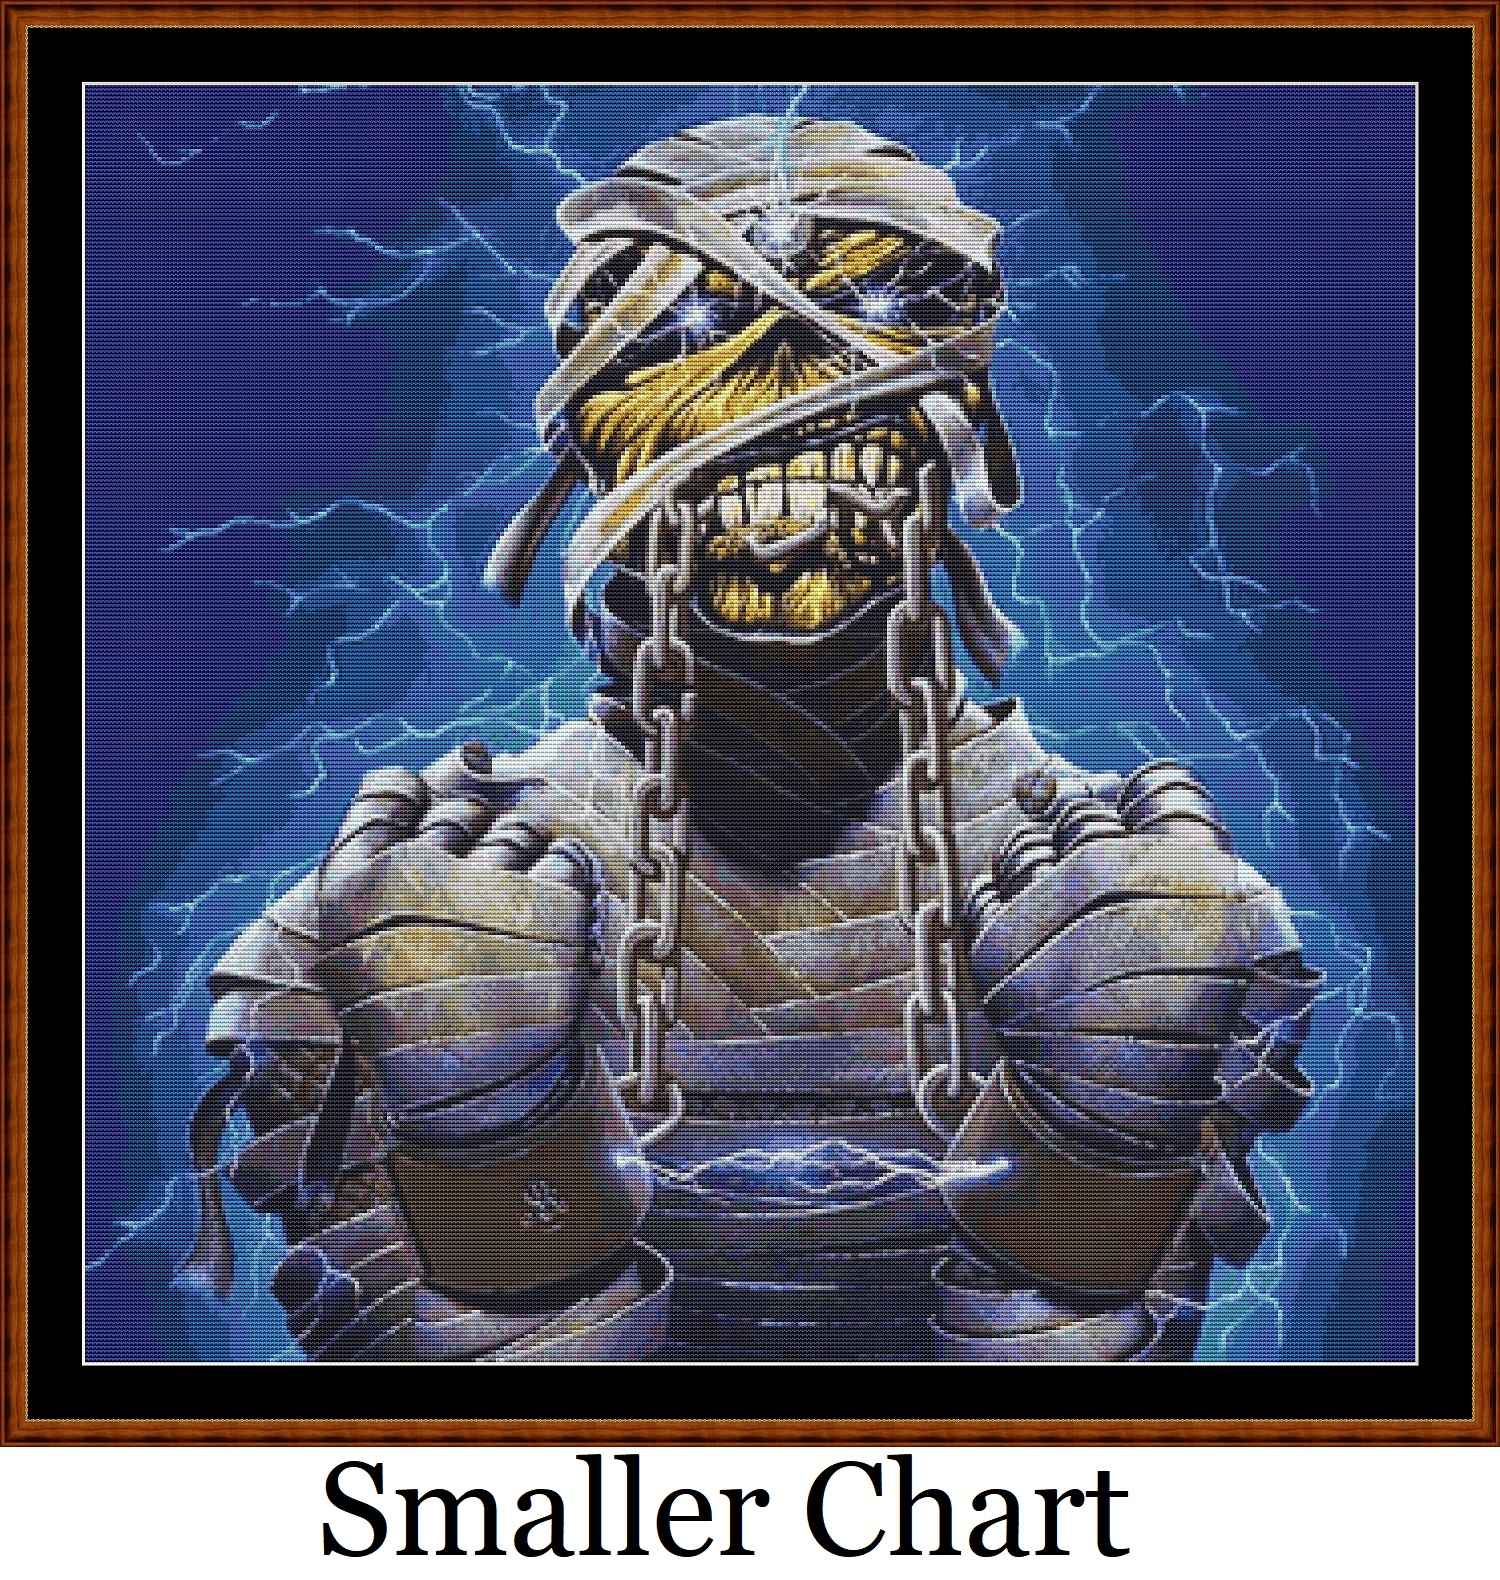 Iron Maiden 3 Cross Stitch